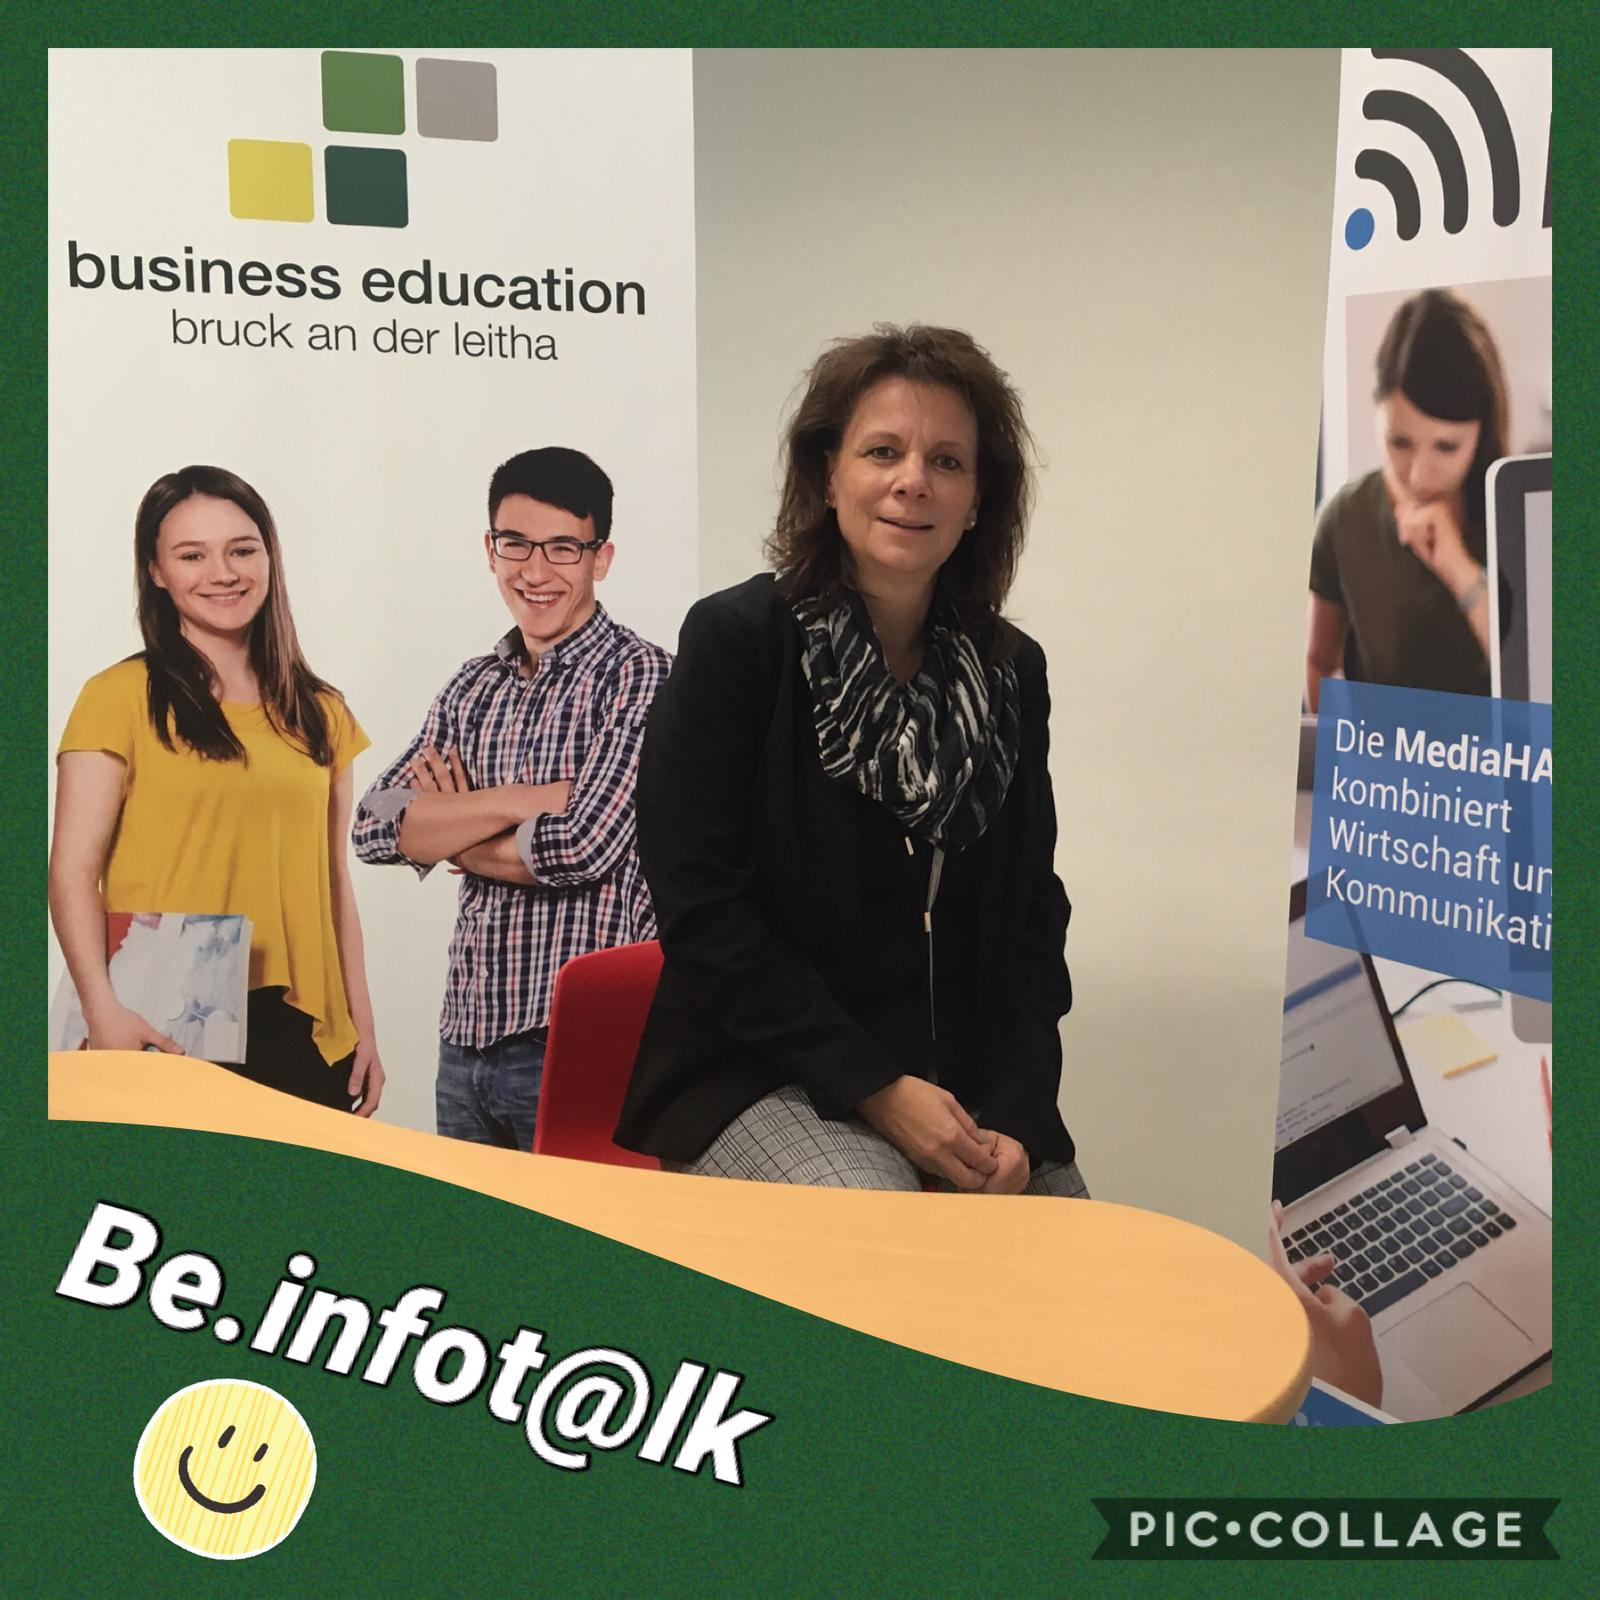 be.bruck: business education